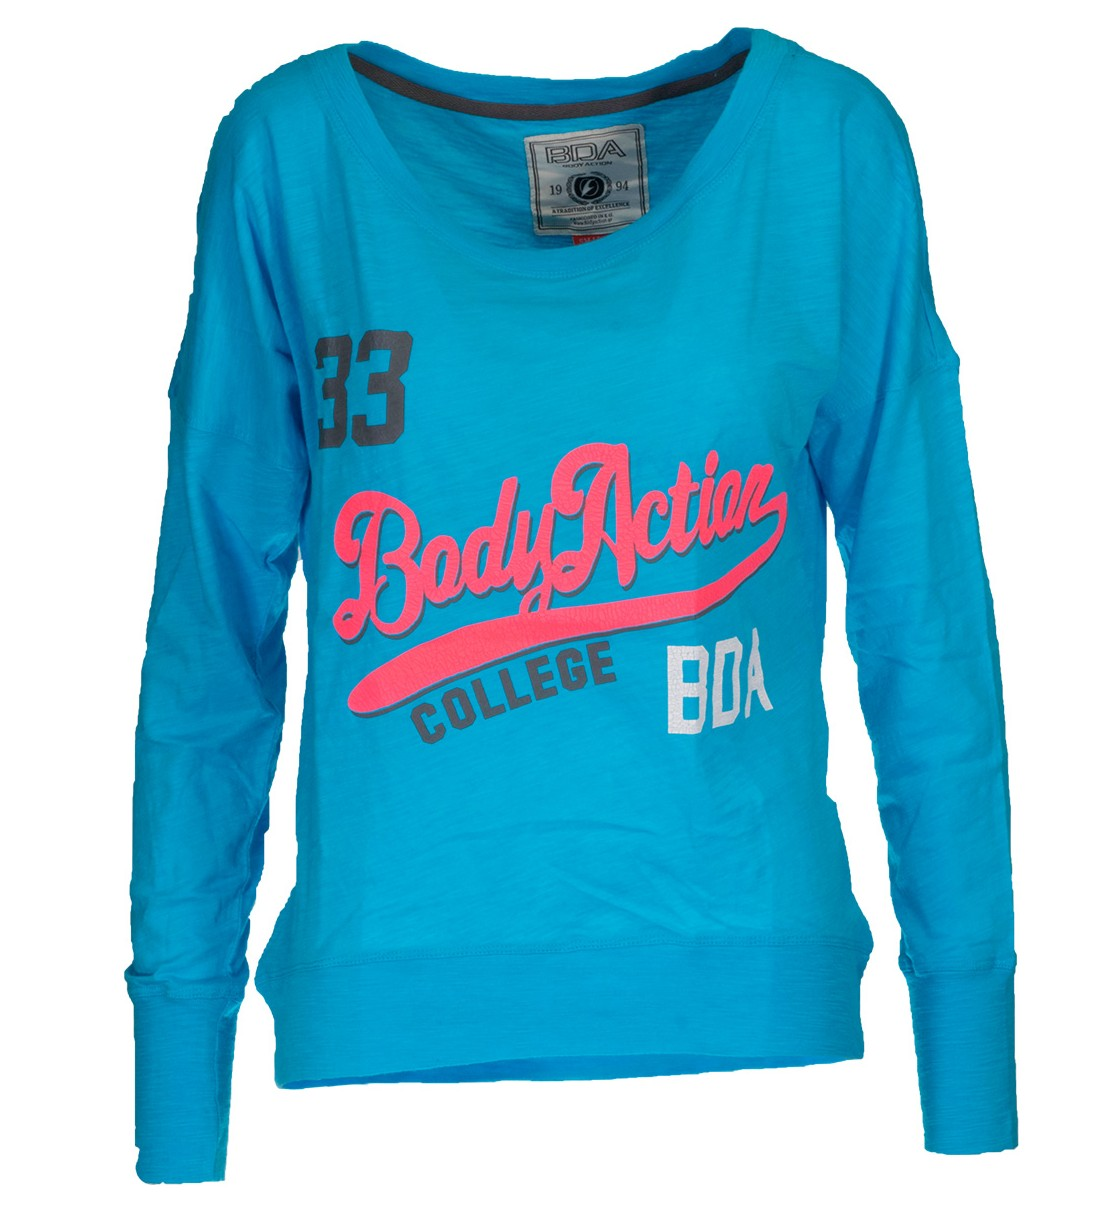 Body Action WOMEN LOOSE BAT STYLE TOP